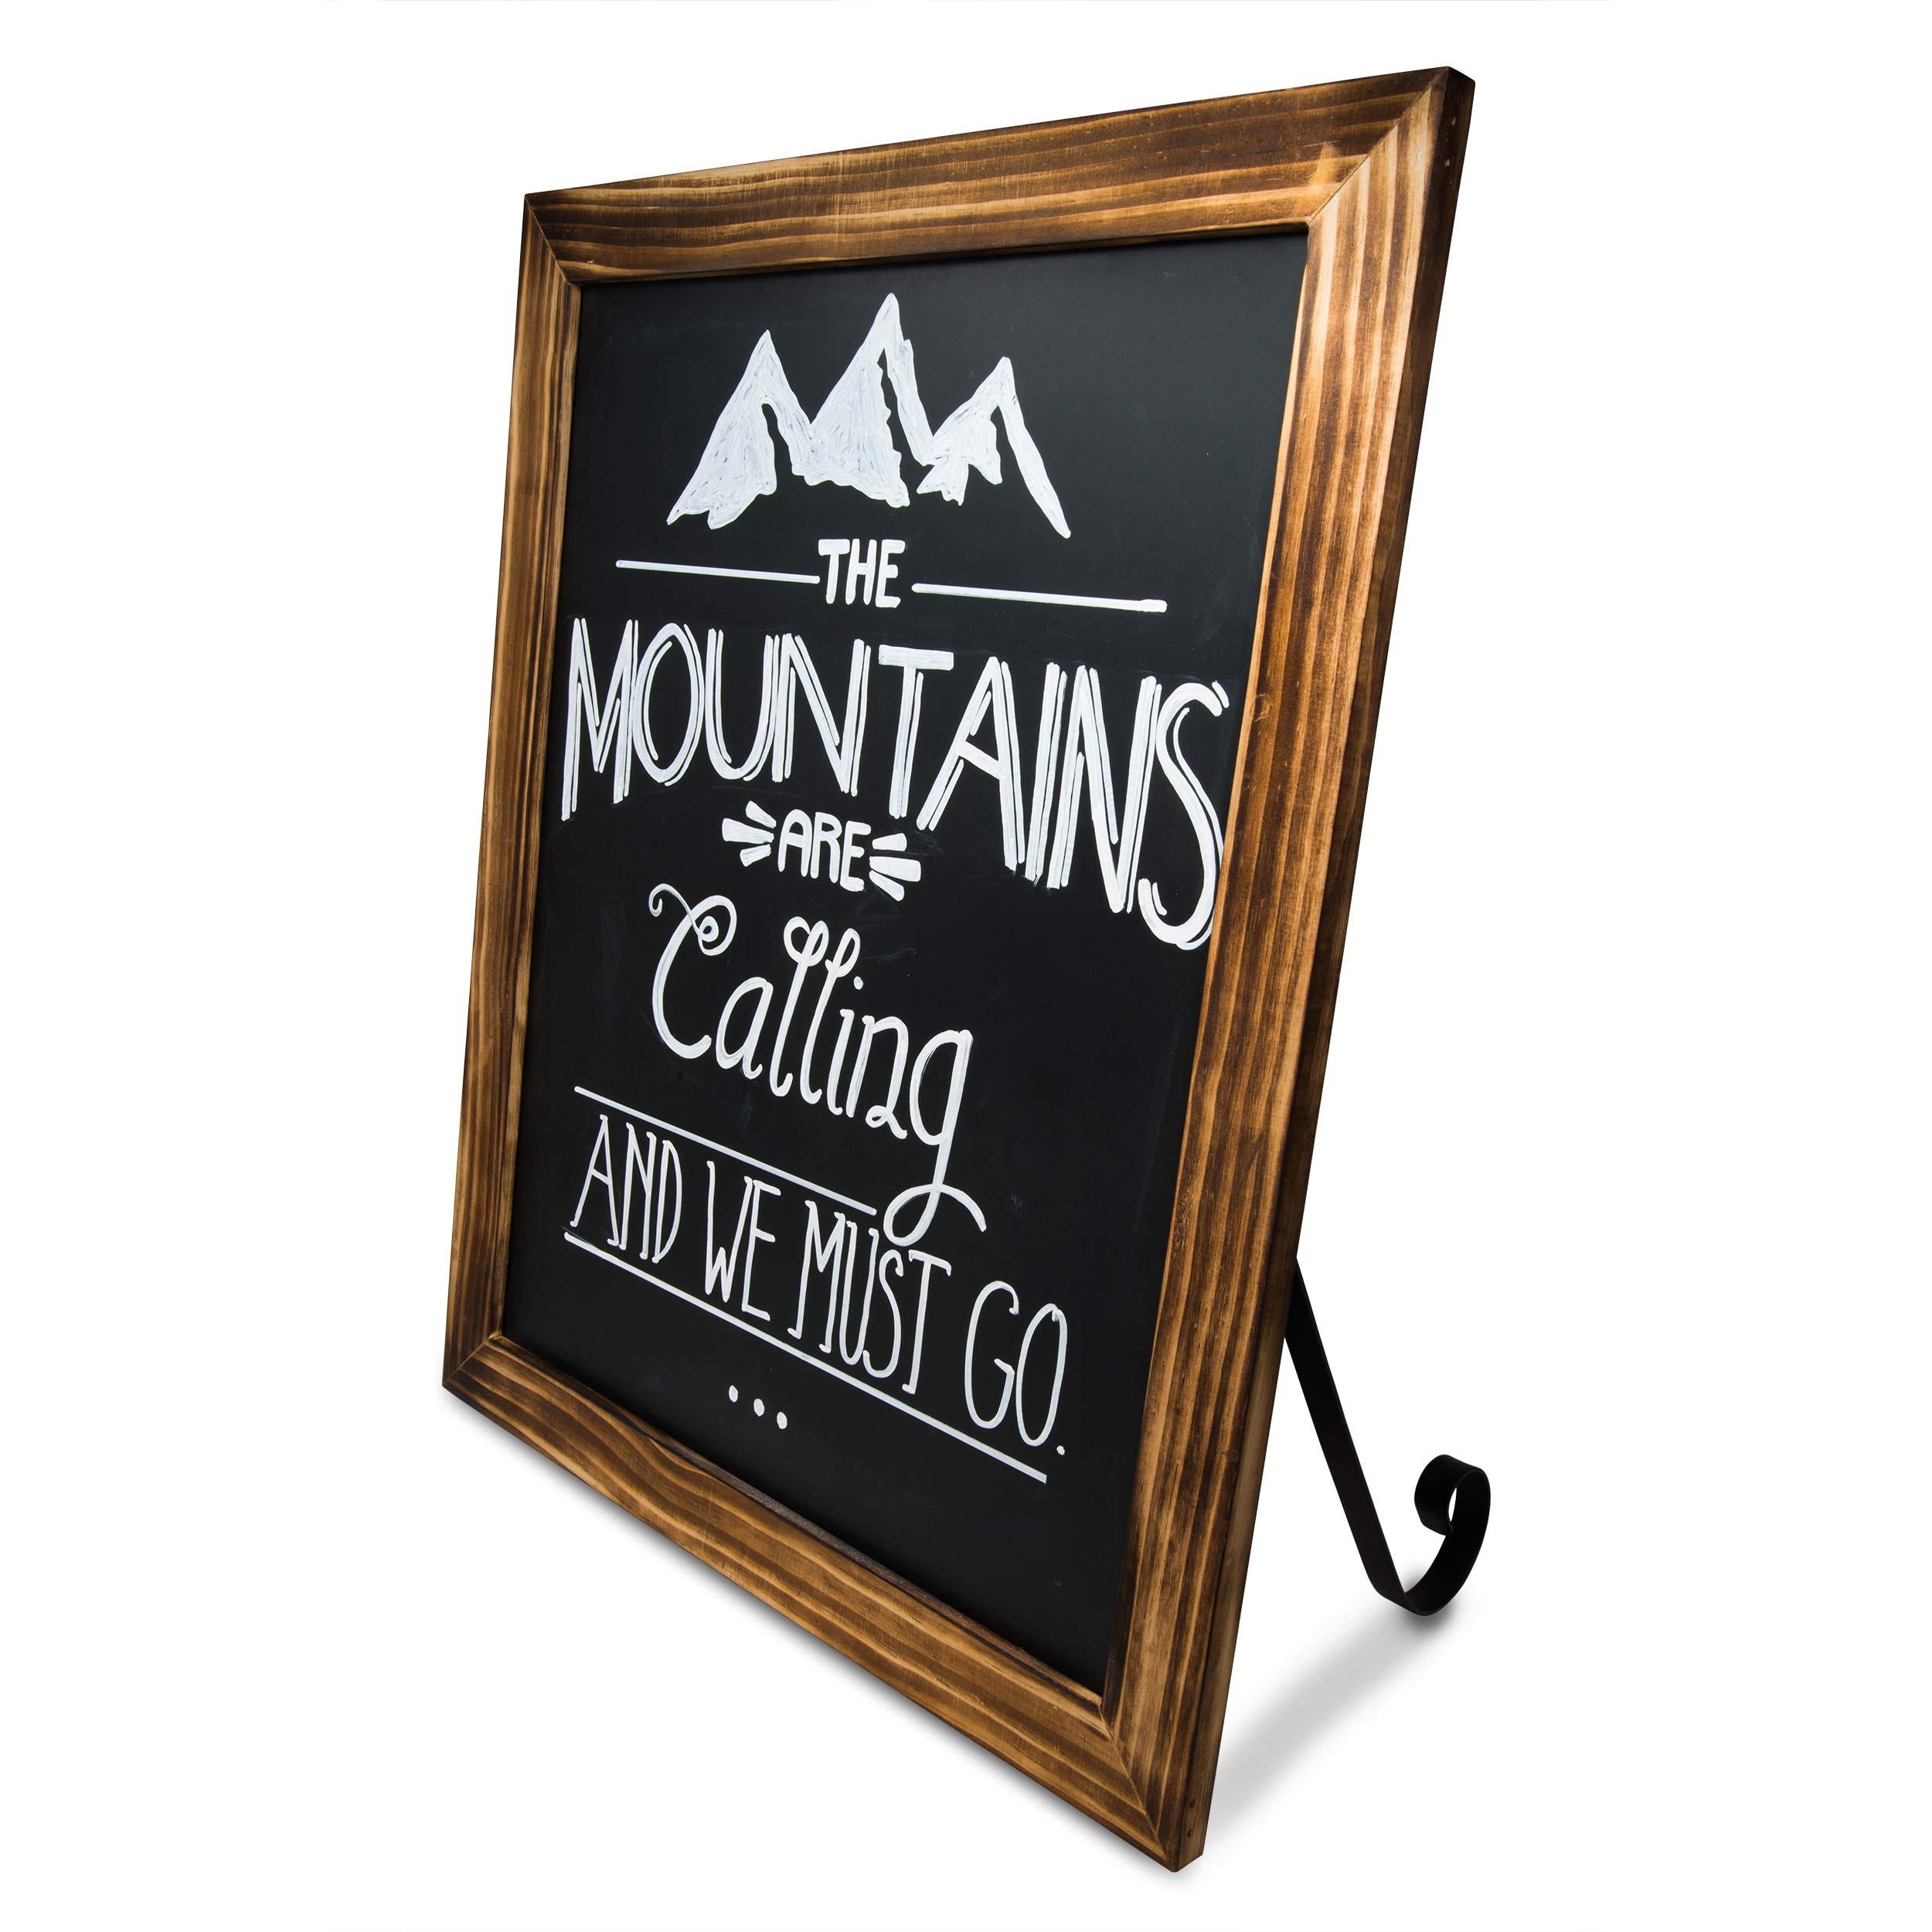 TenXVI Designs 18''x22'' Freestanding and Hanging Vertical or Horizontal Magnetic Chalkboard Sign with Removable Legs for Weddings, Restaurants and Home Decor - Torched Wood by TenXVI Designs